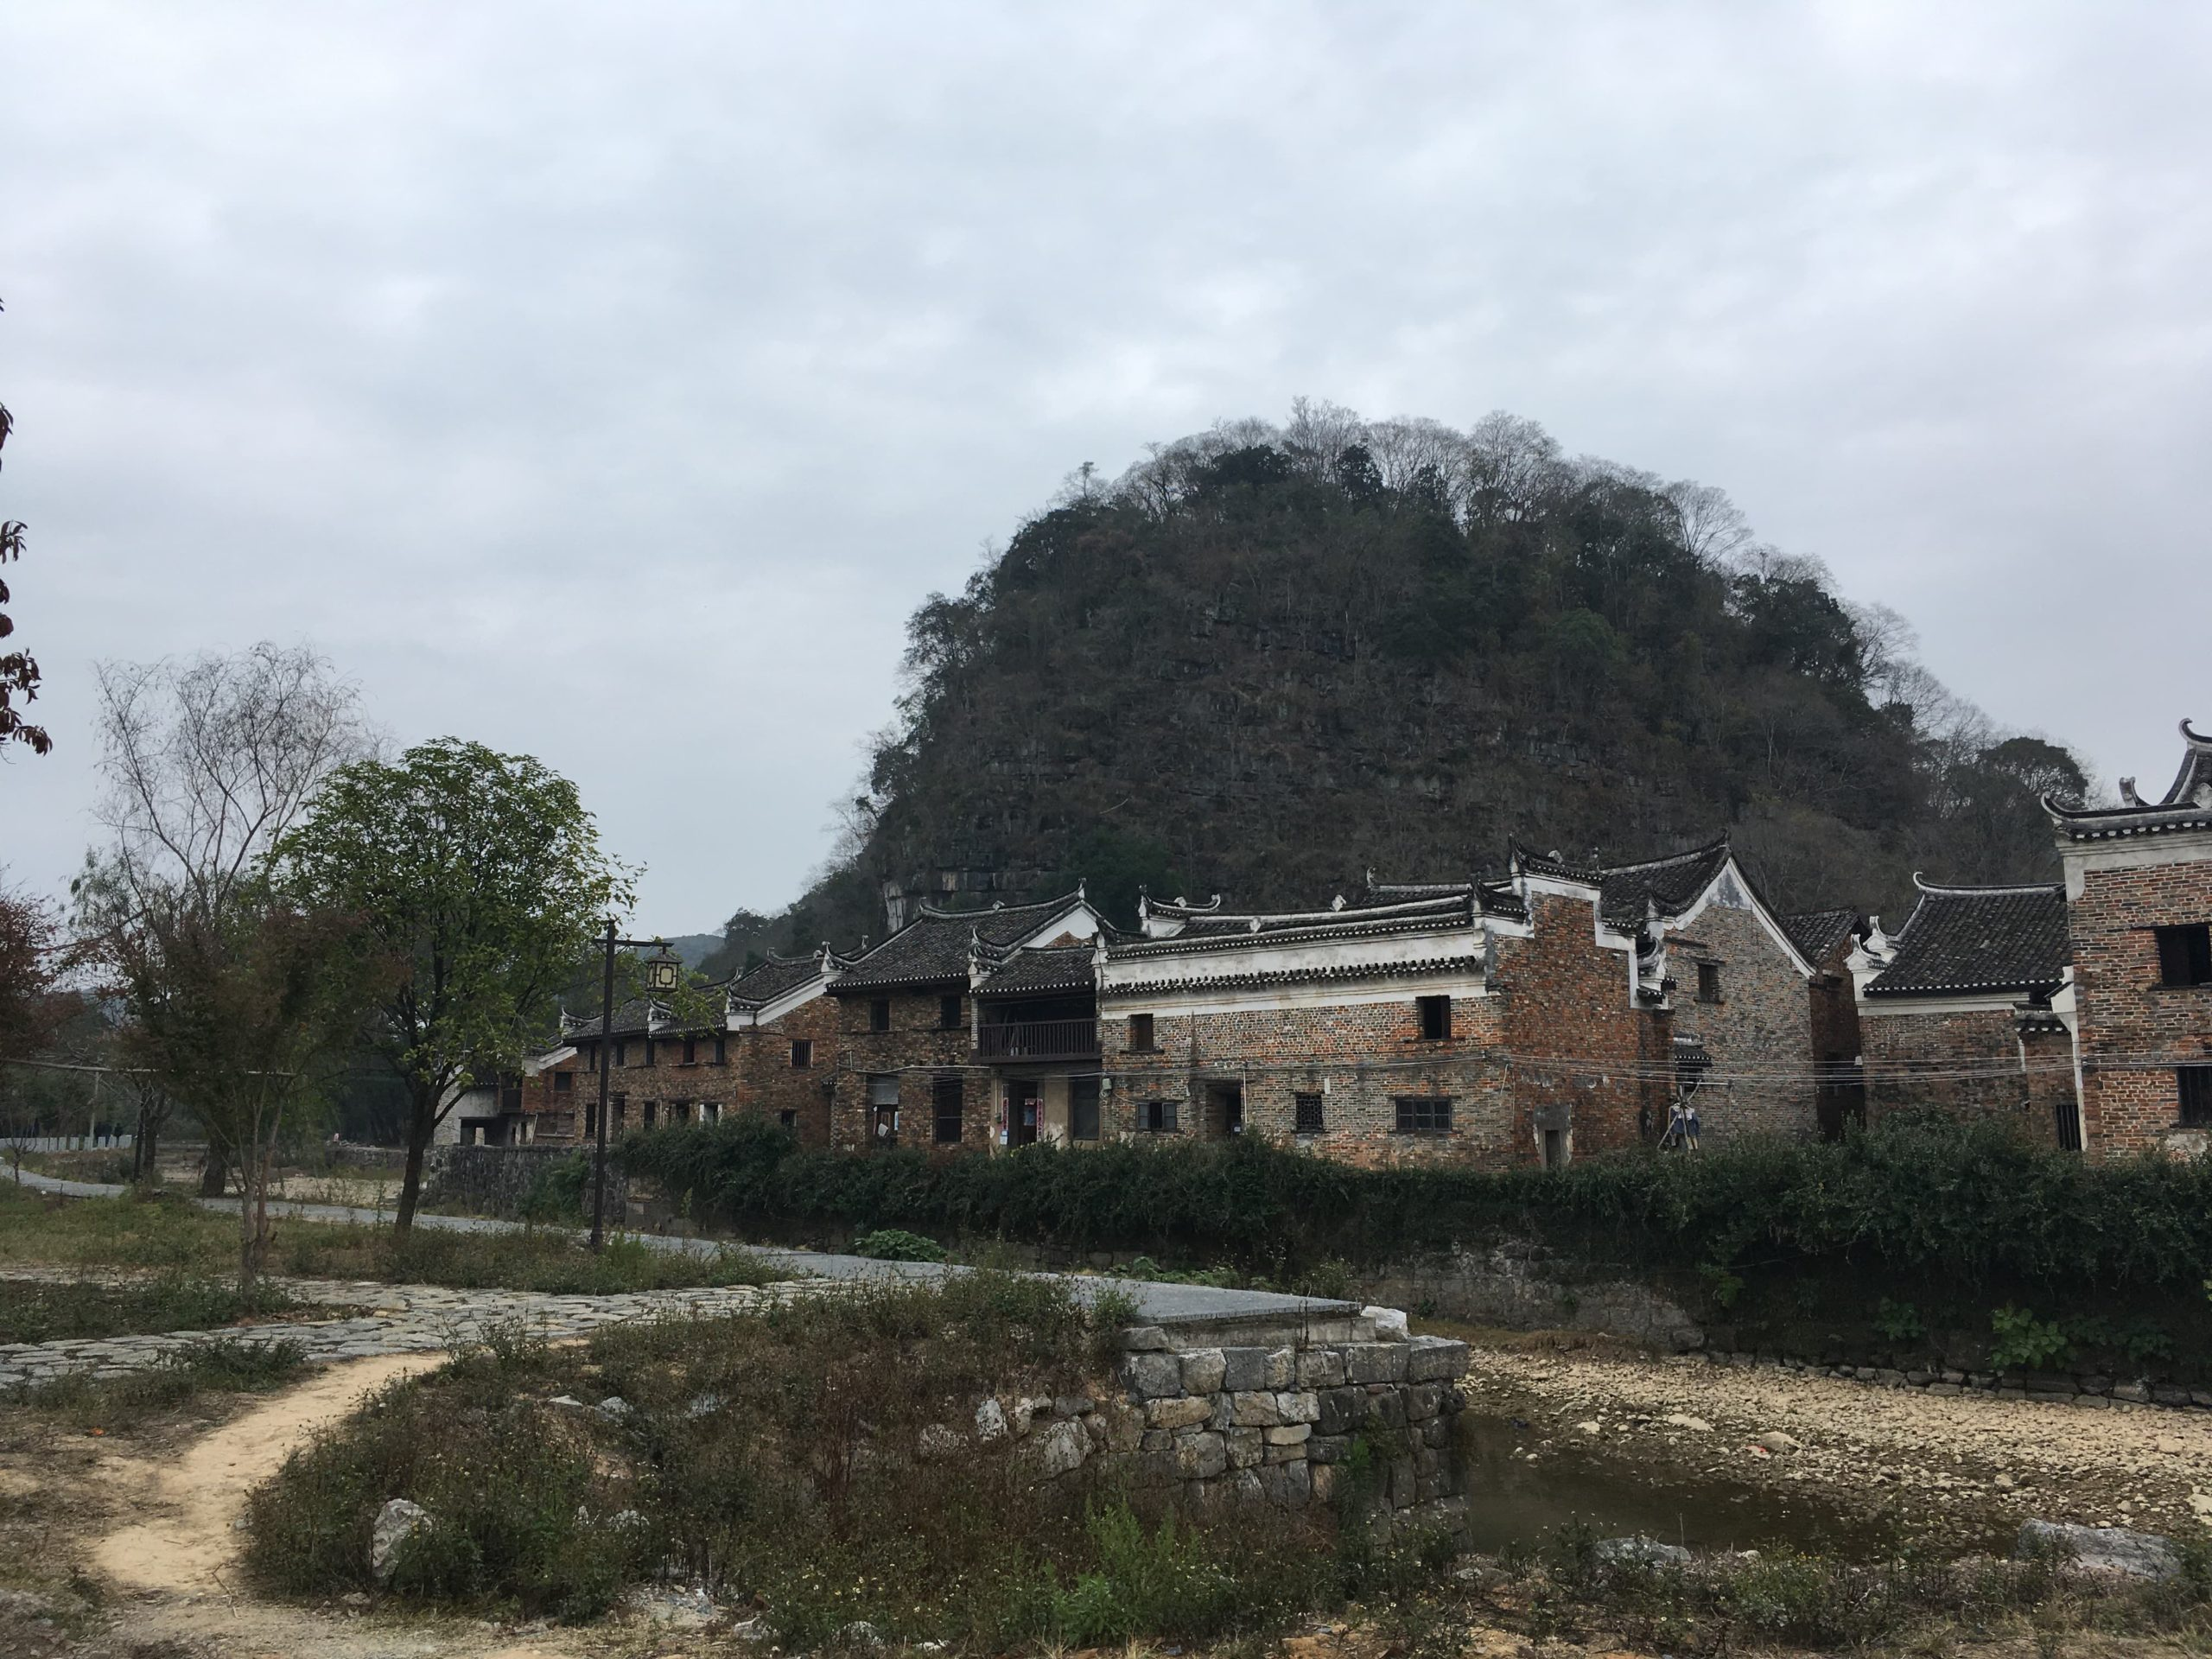 Photograph of Shang Gang Tang village in Jiangyong county